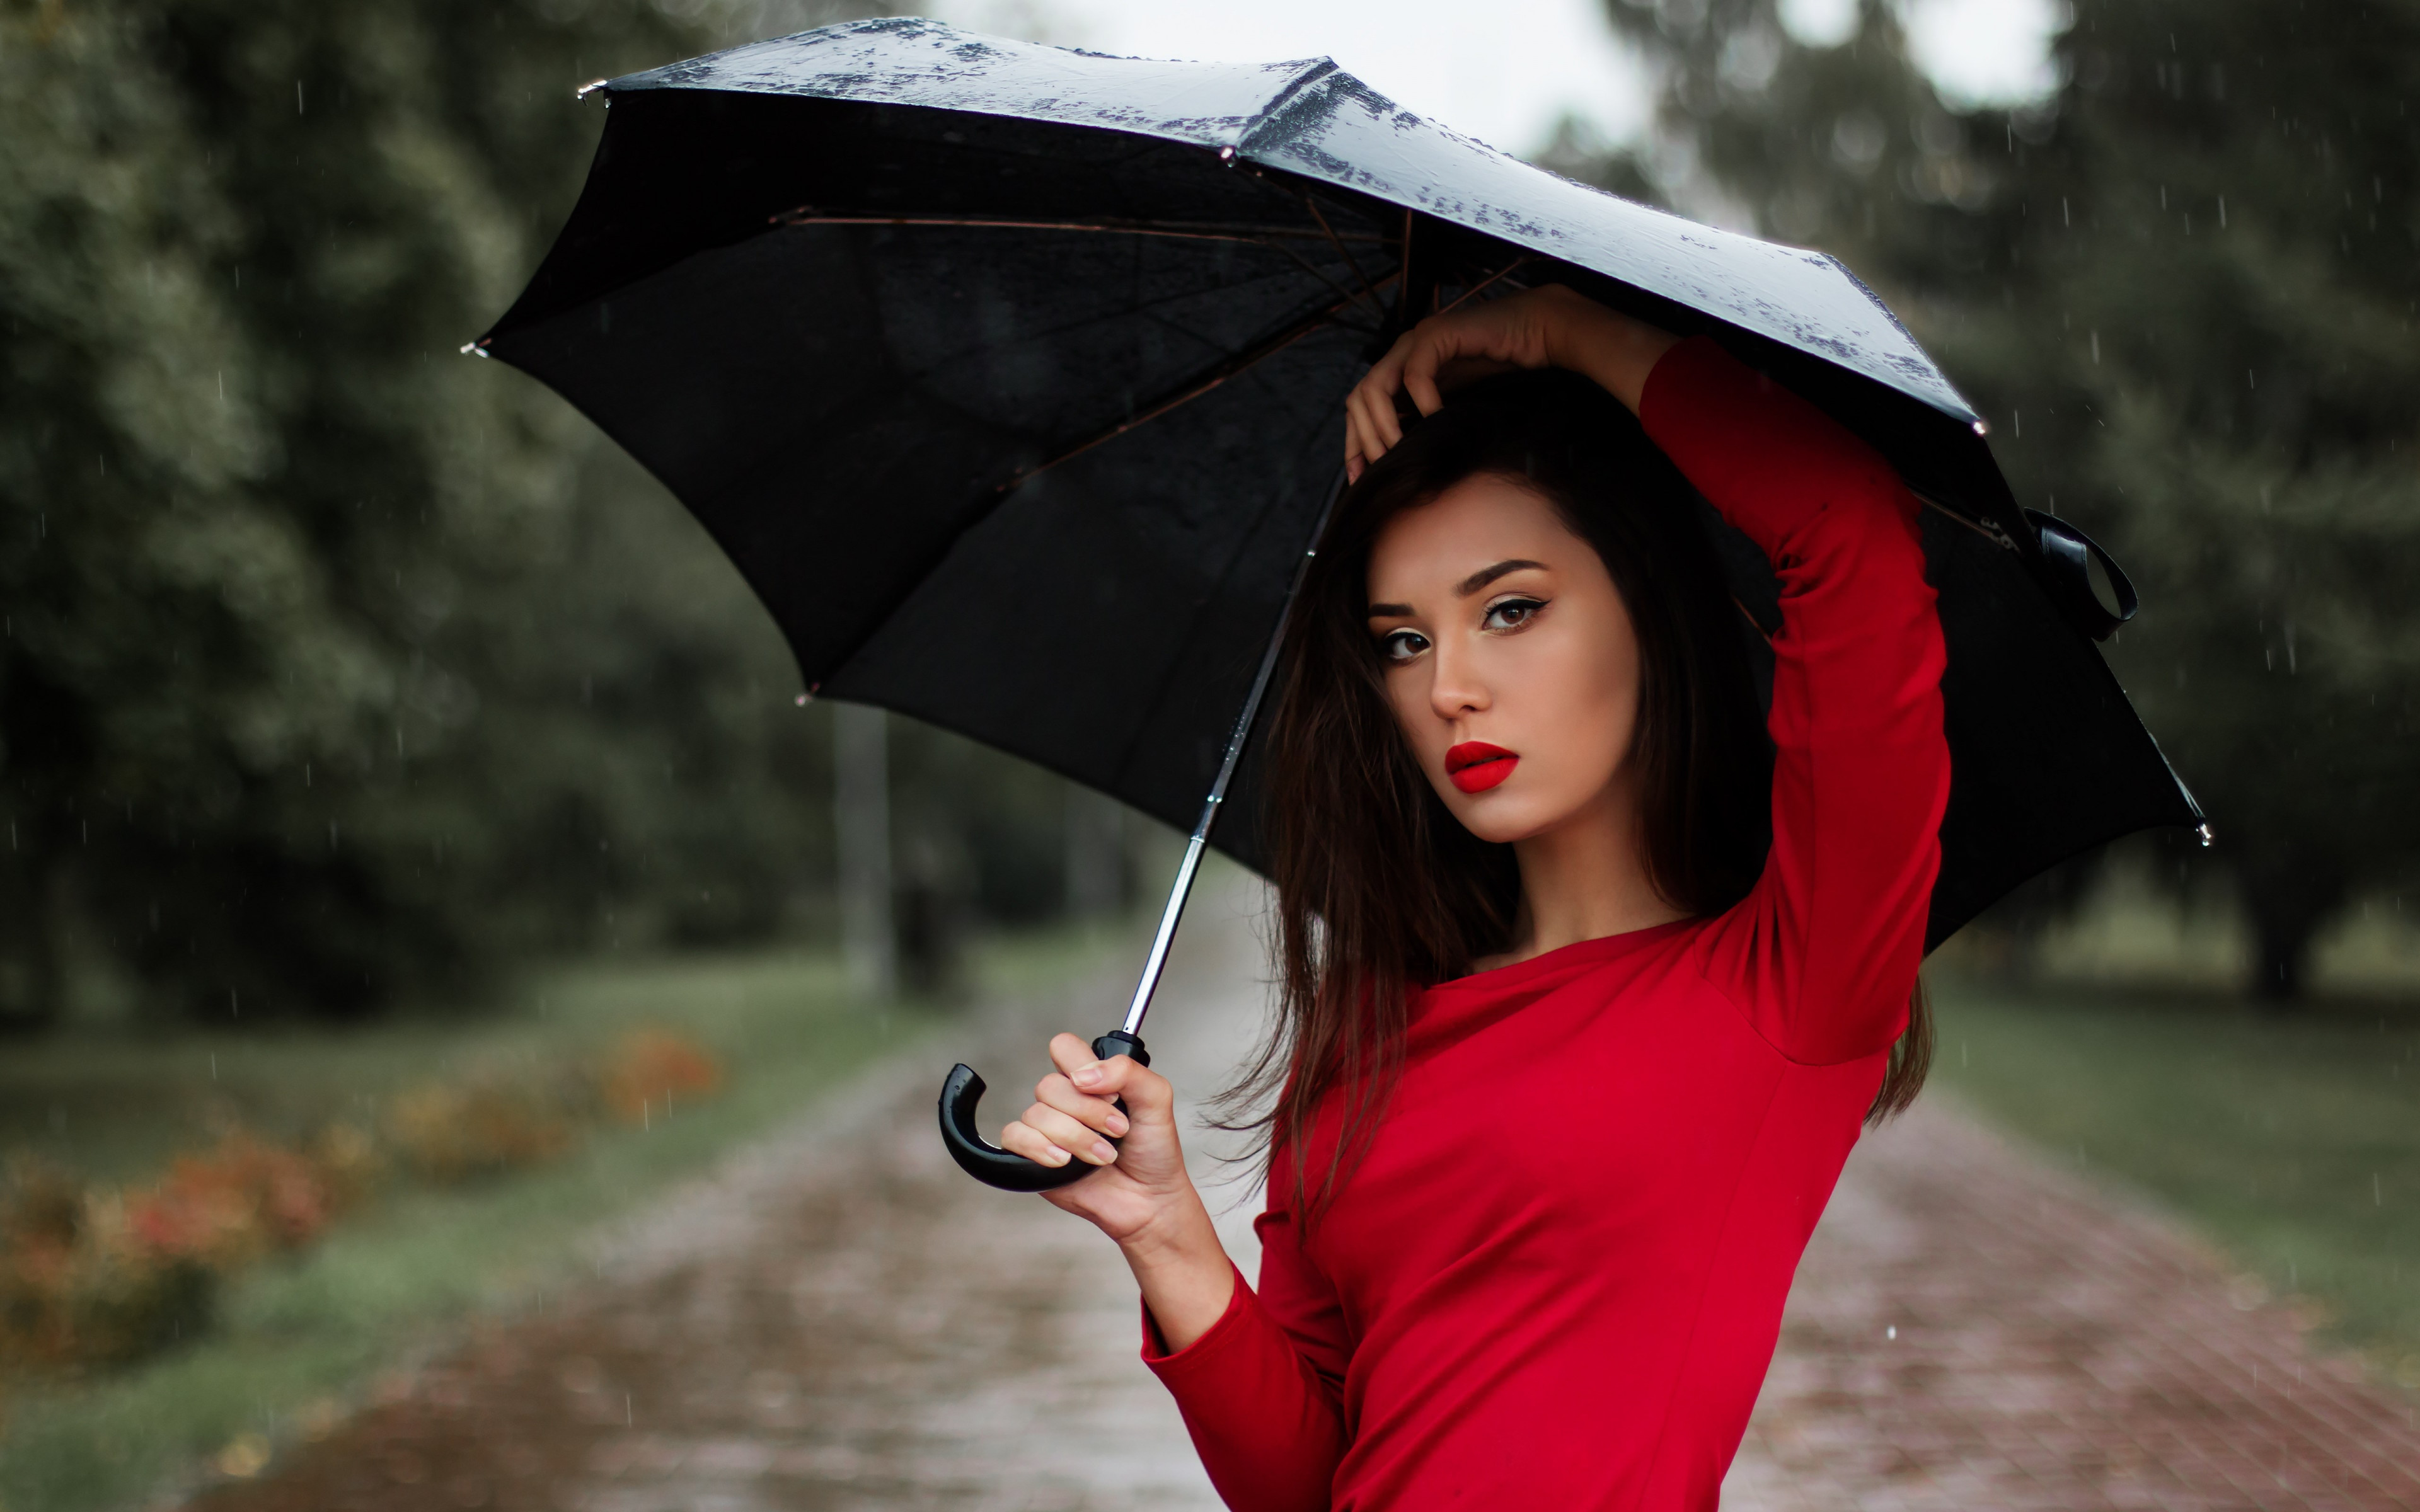 Beauitful girl in a rainy day | 3840x2400 wallpaper